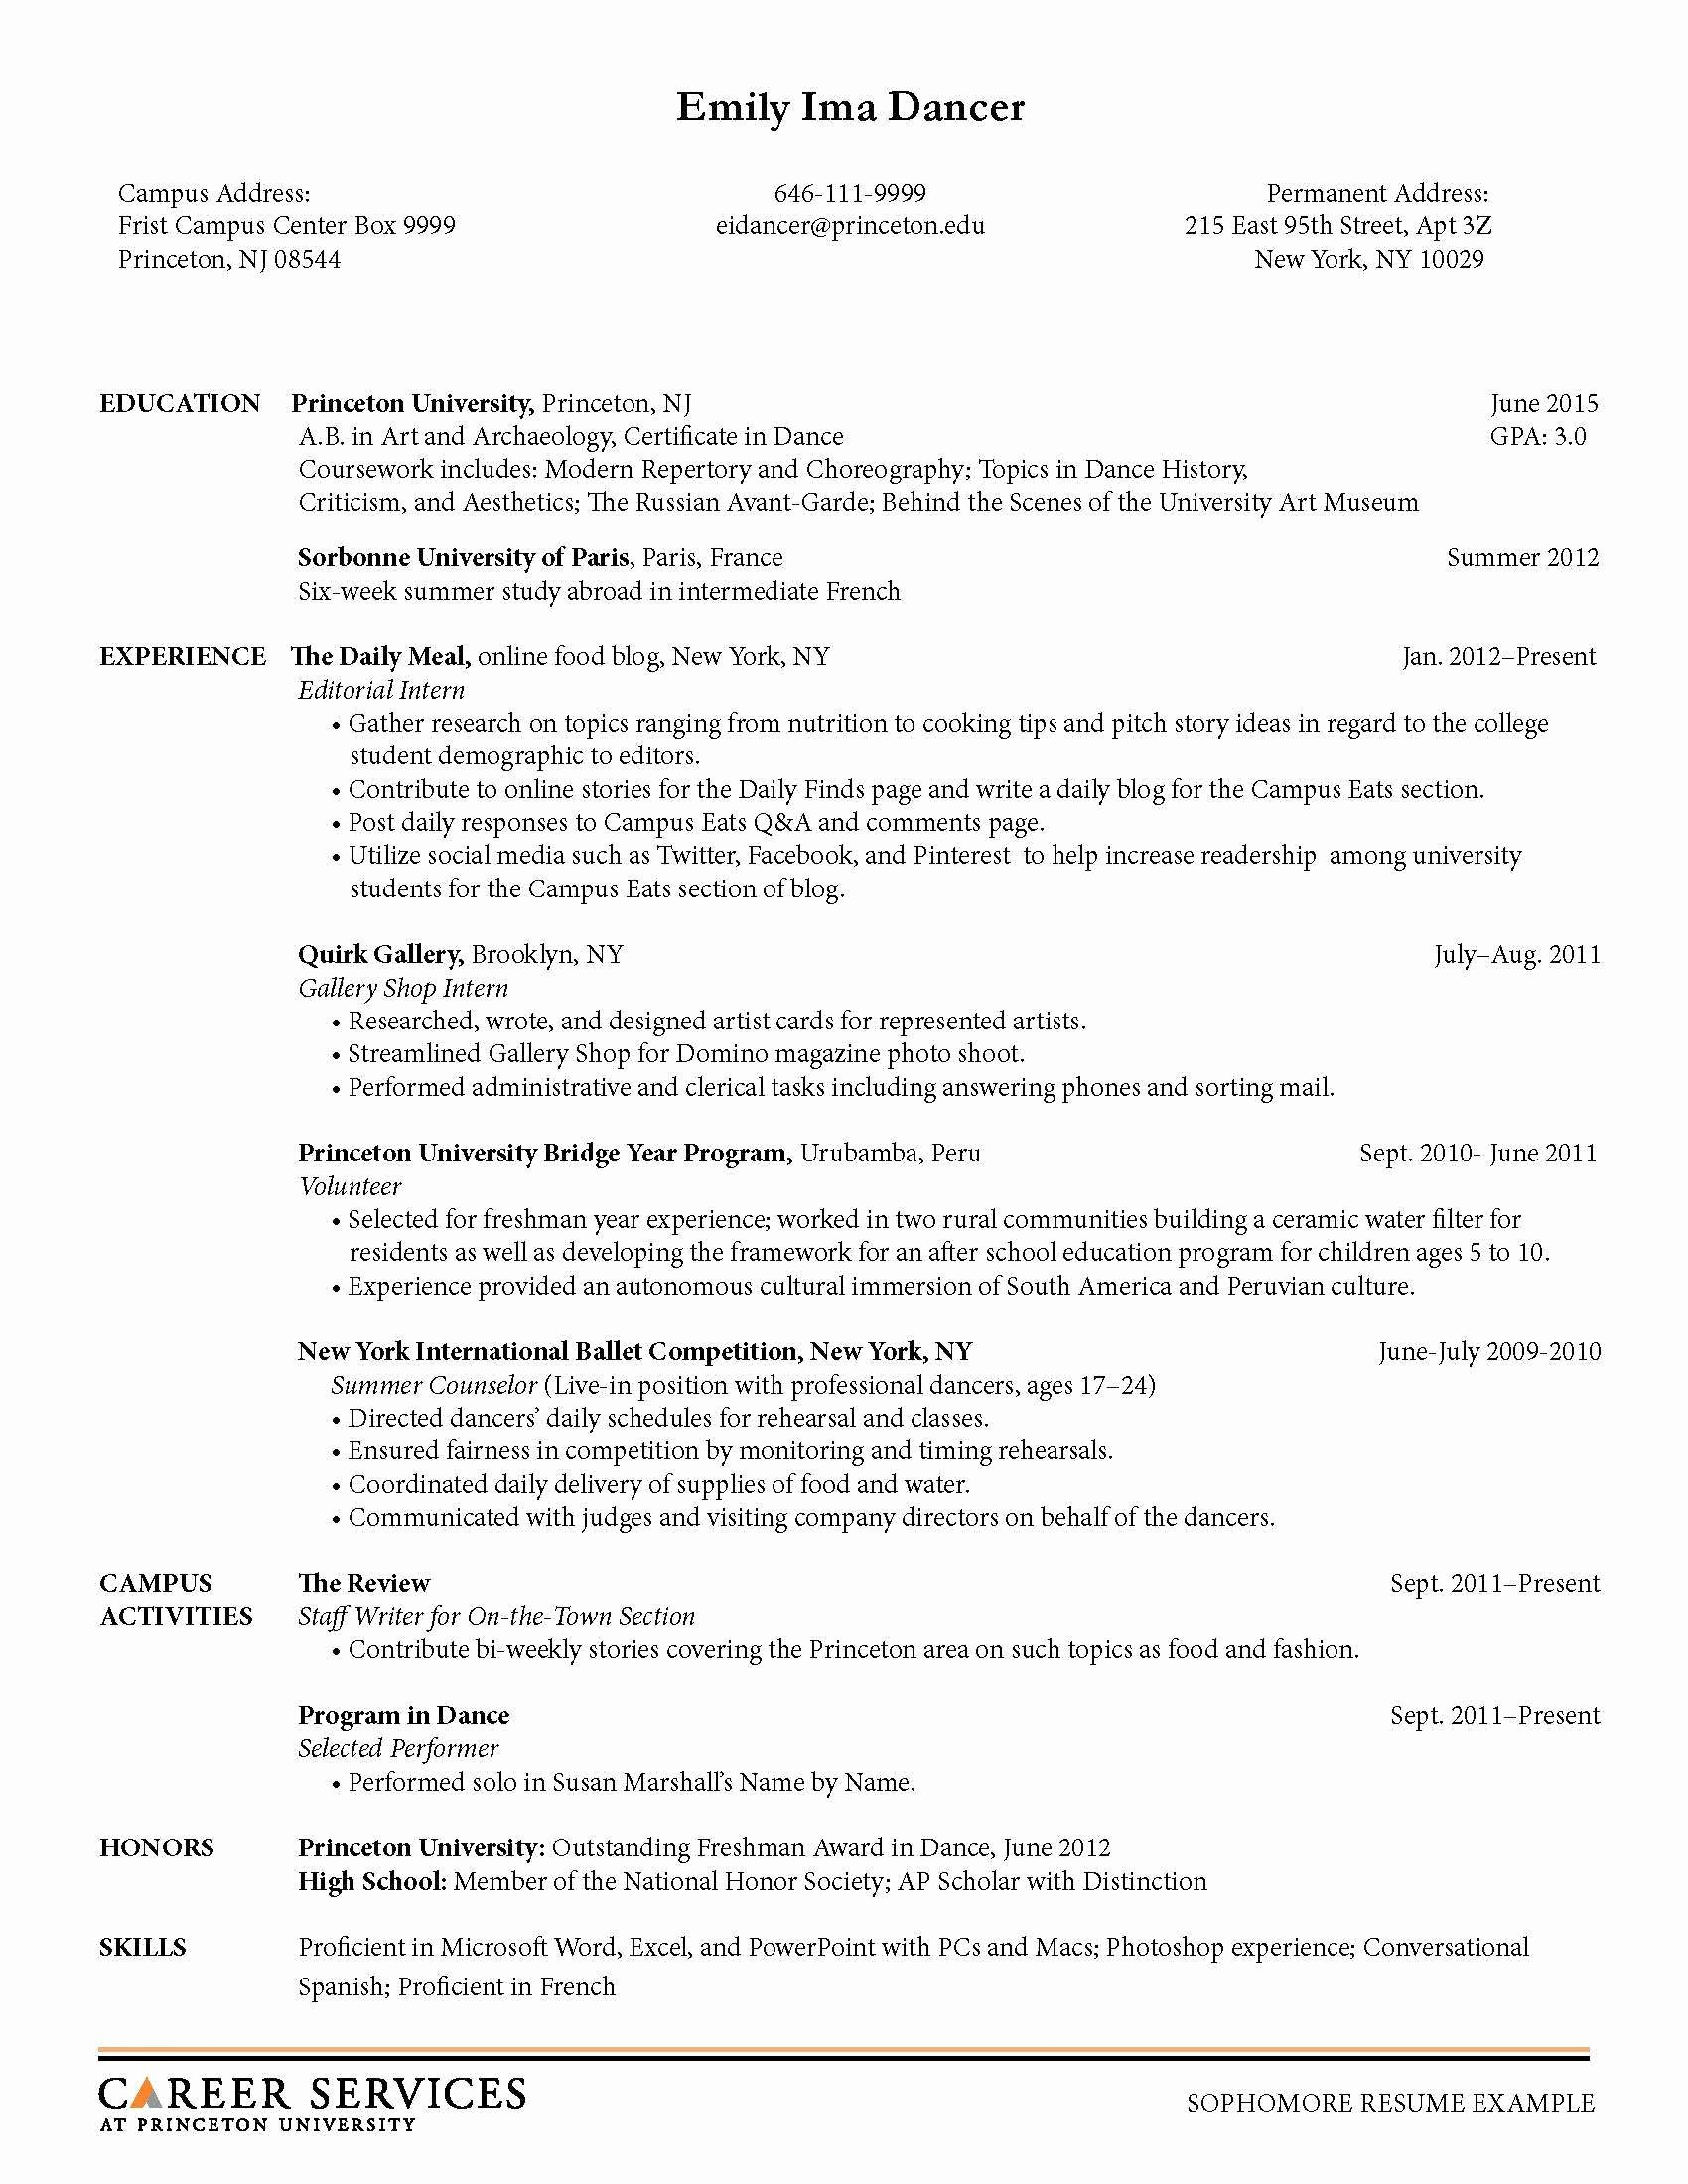 List Interpersonal Skills for Resume Resume Ideas